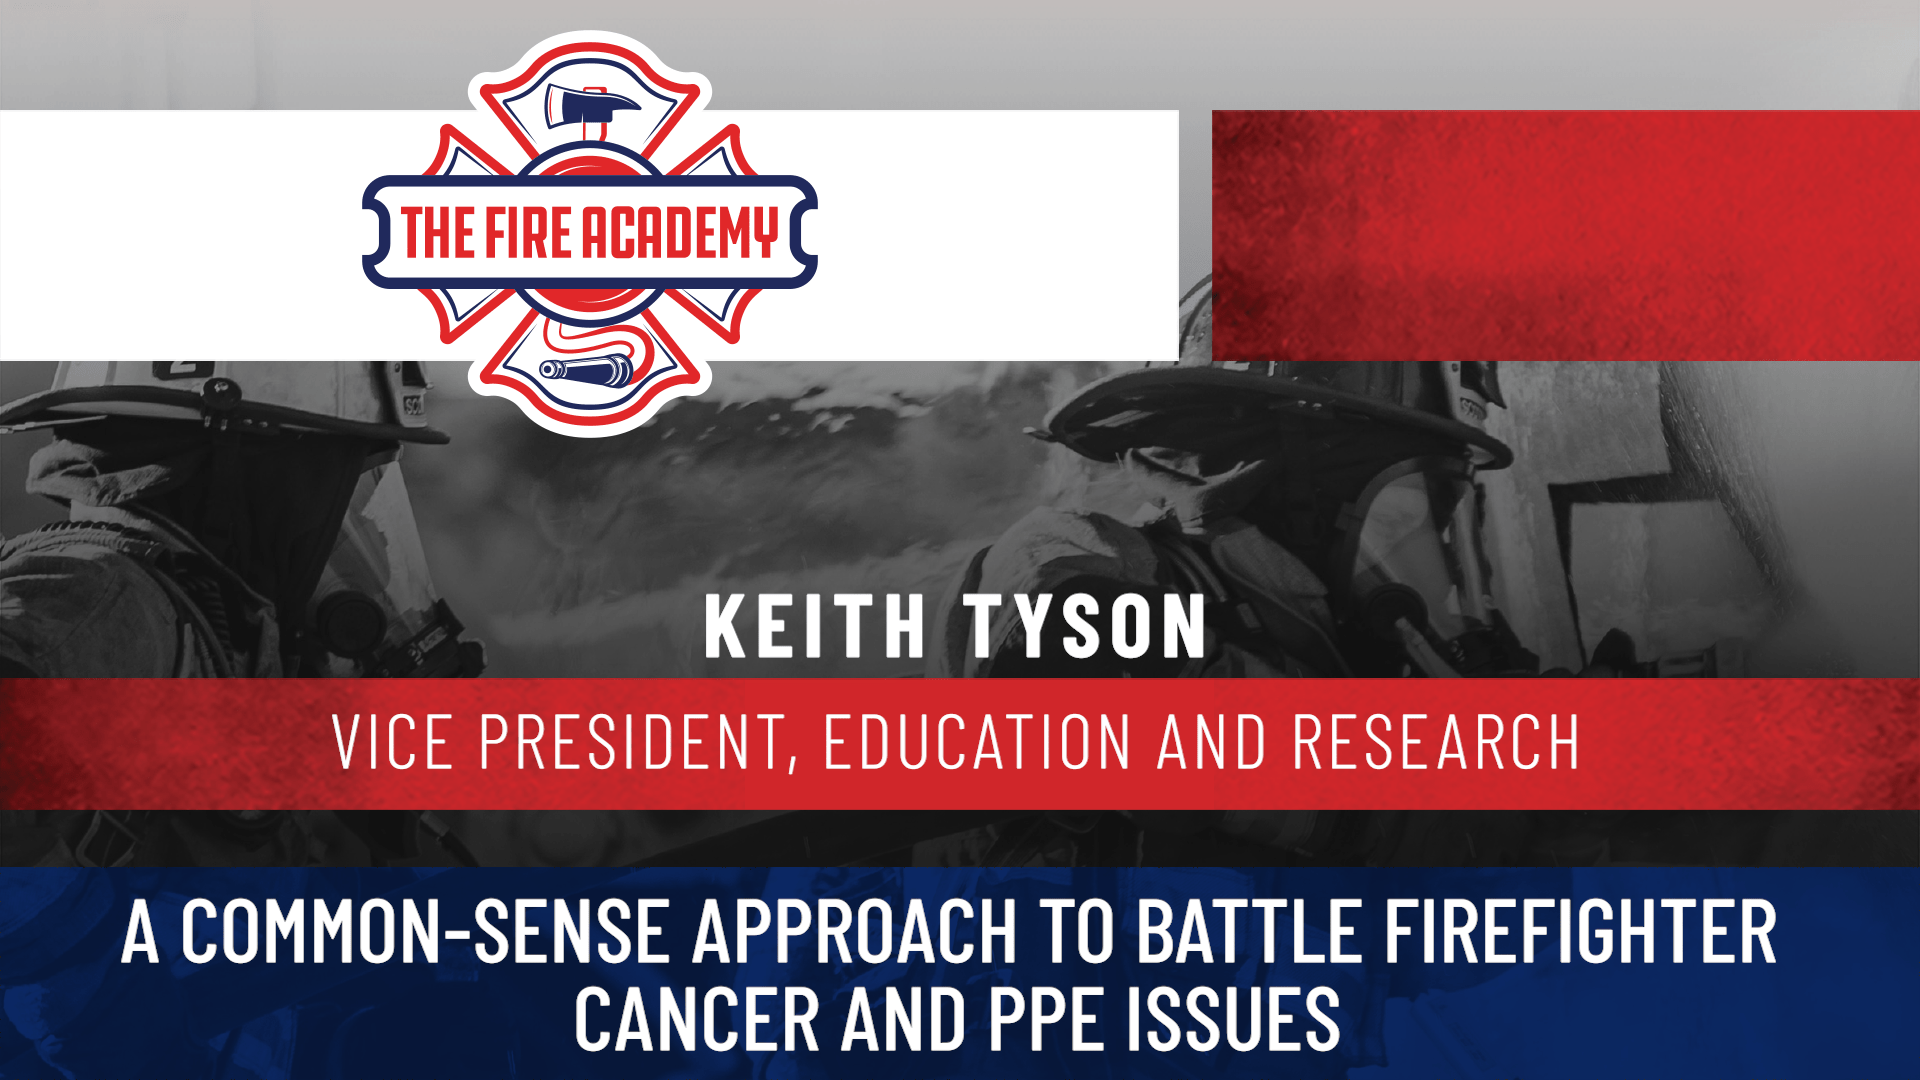 A Common-Sense Approach to Battle Firefighter Cancer and PPE Issues